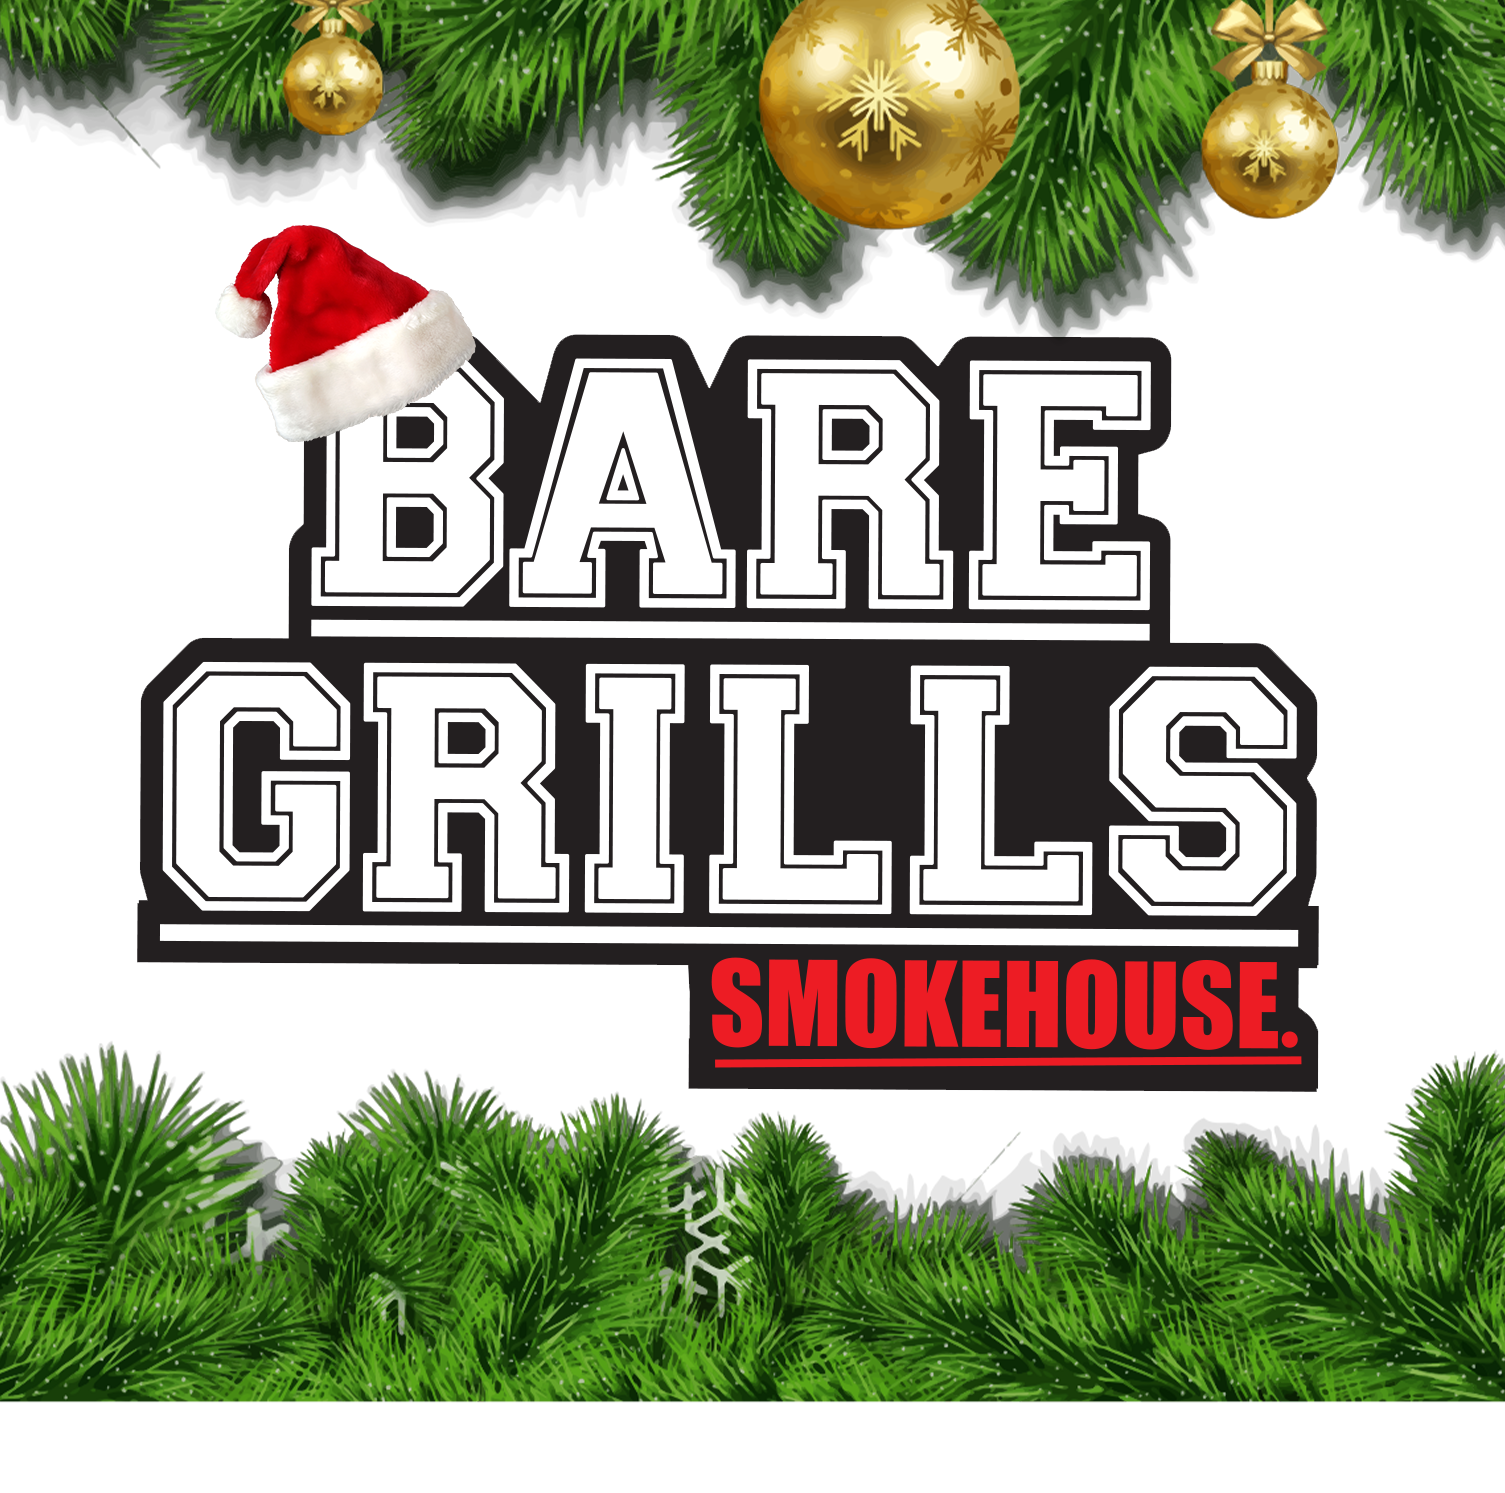 Christmas at Bare Grills